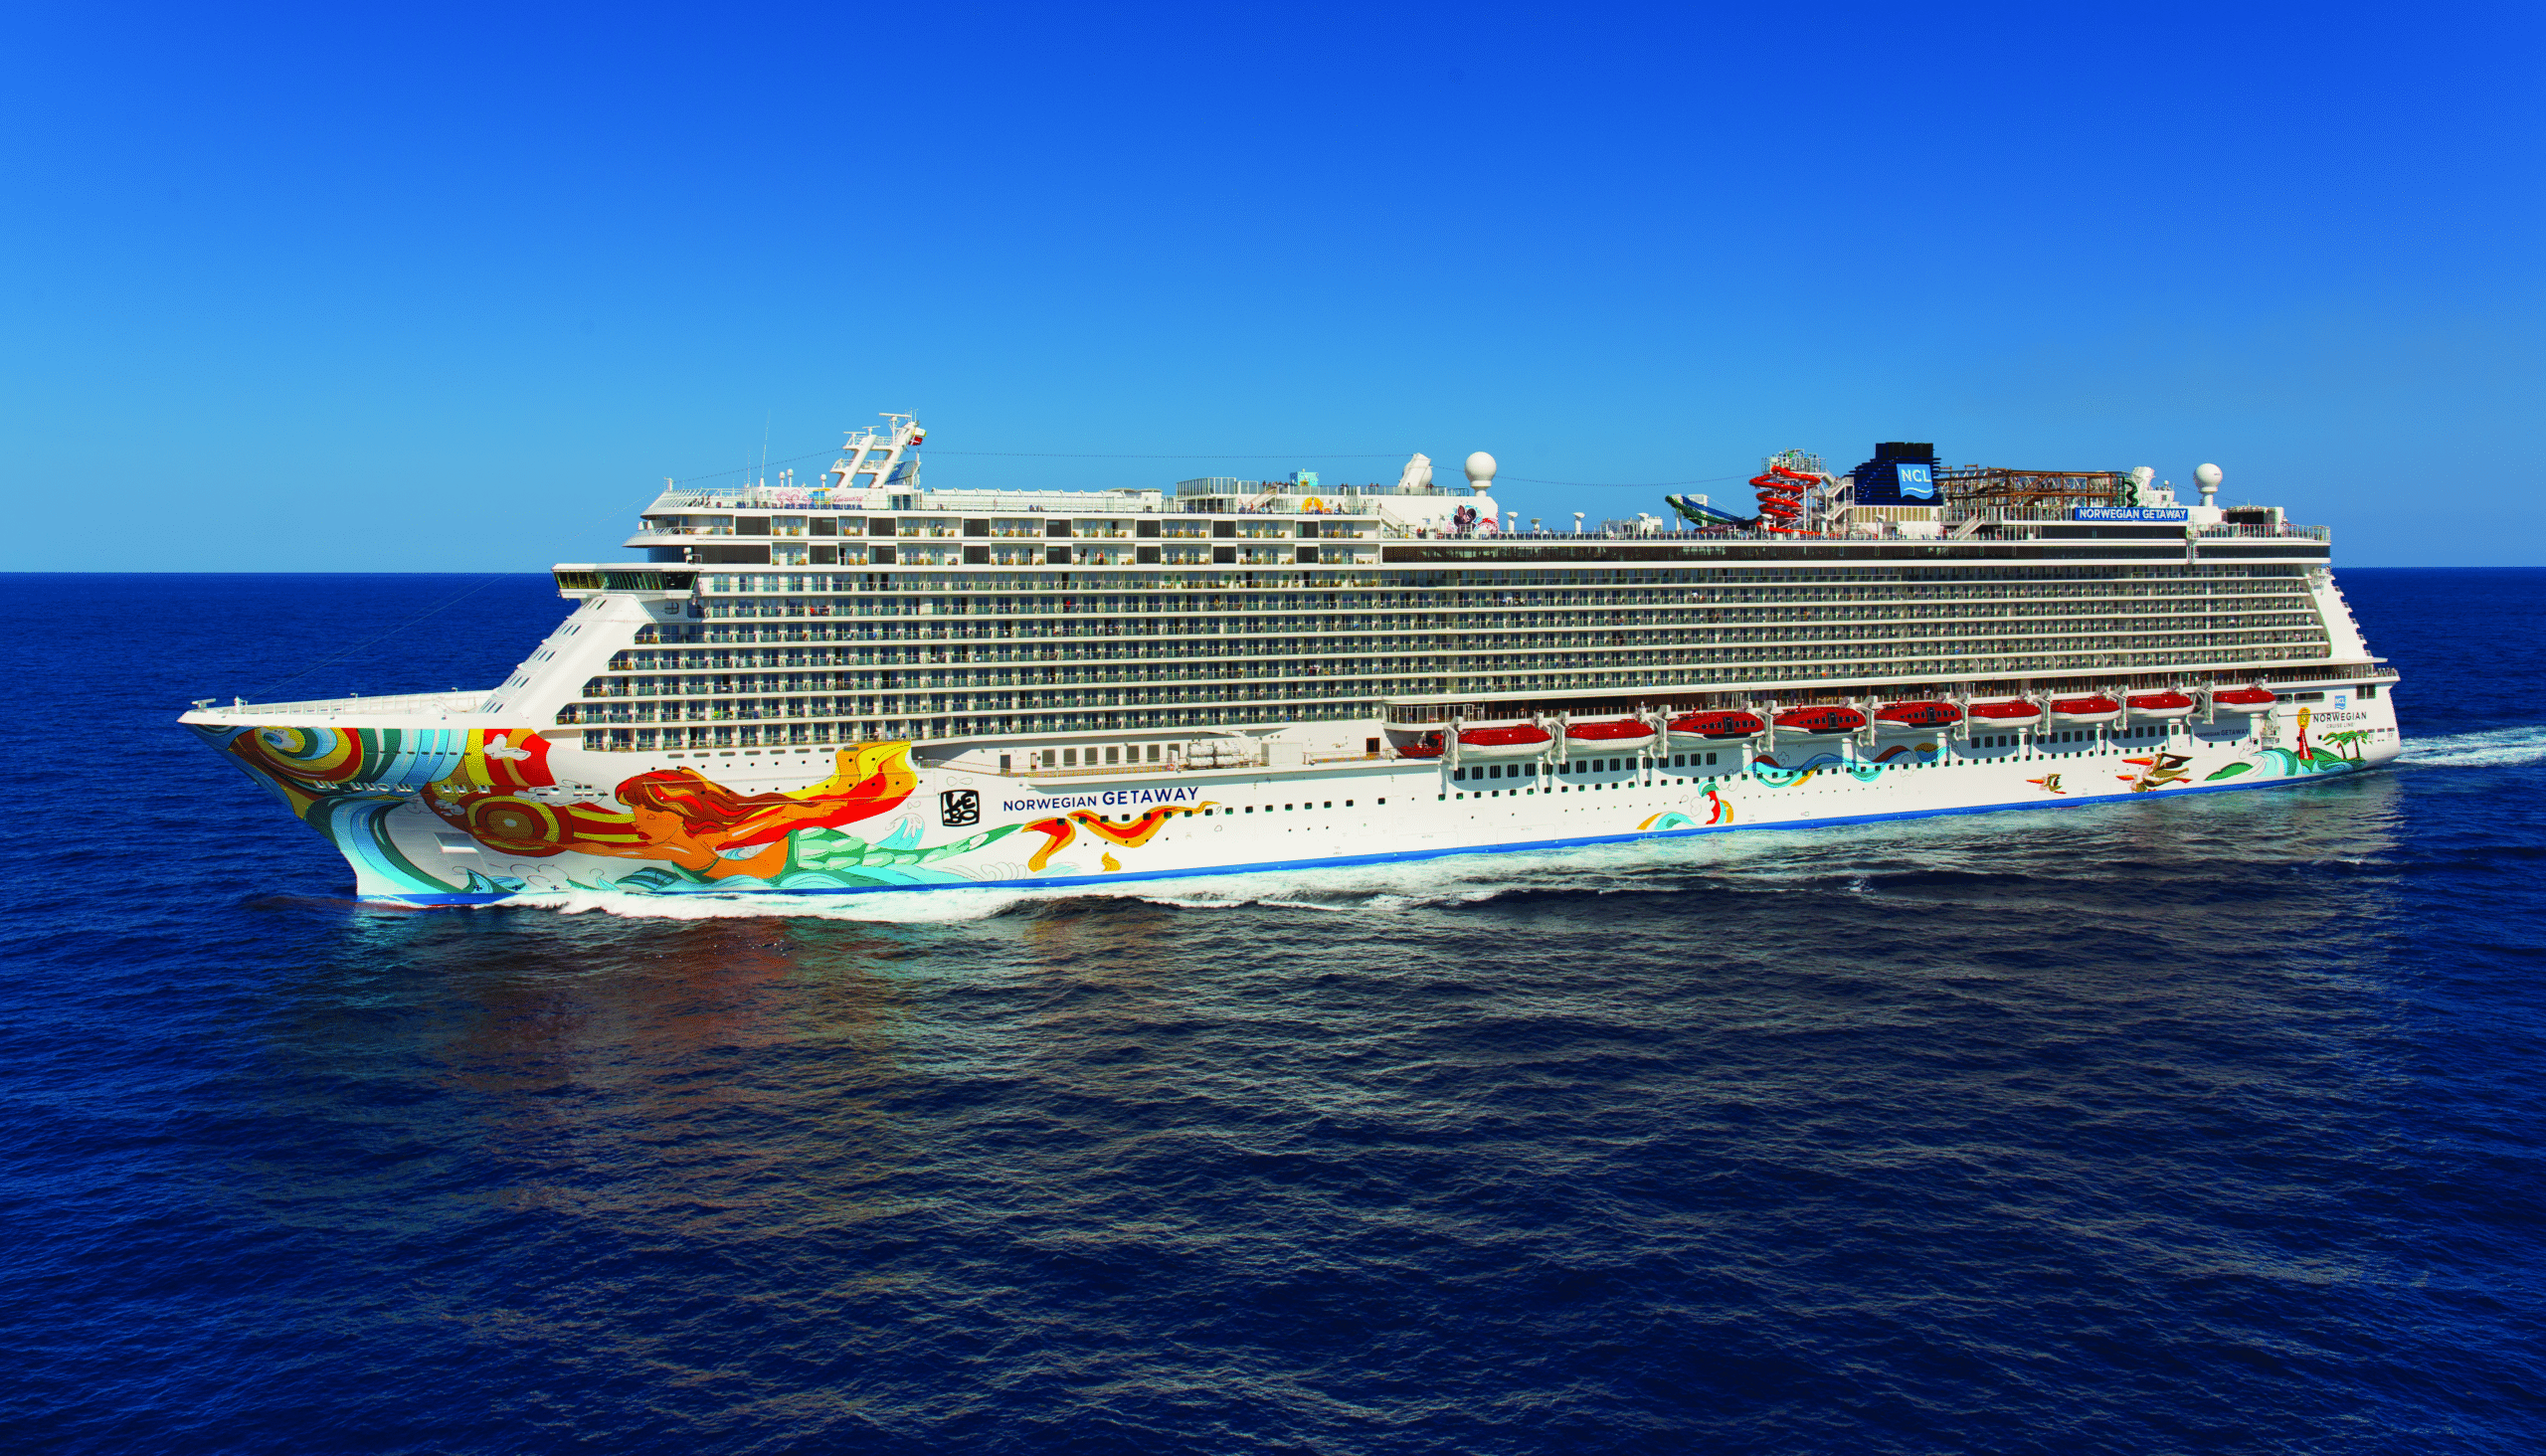 Cruiseschip-Norwegian Getaway-Norwegian Cruise Line-Schip